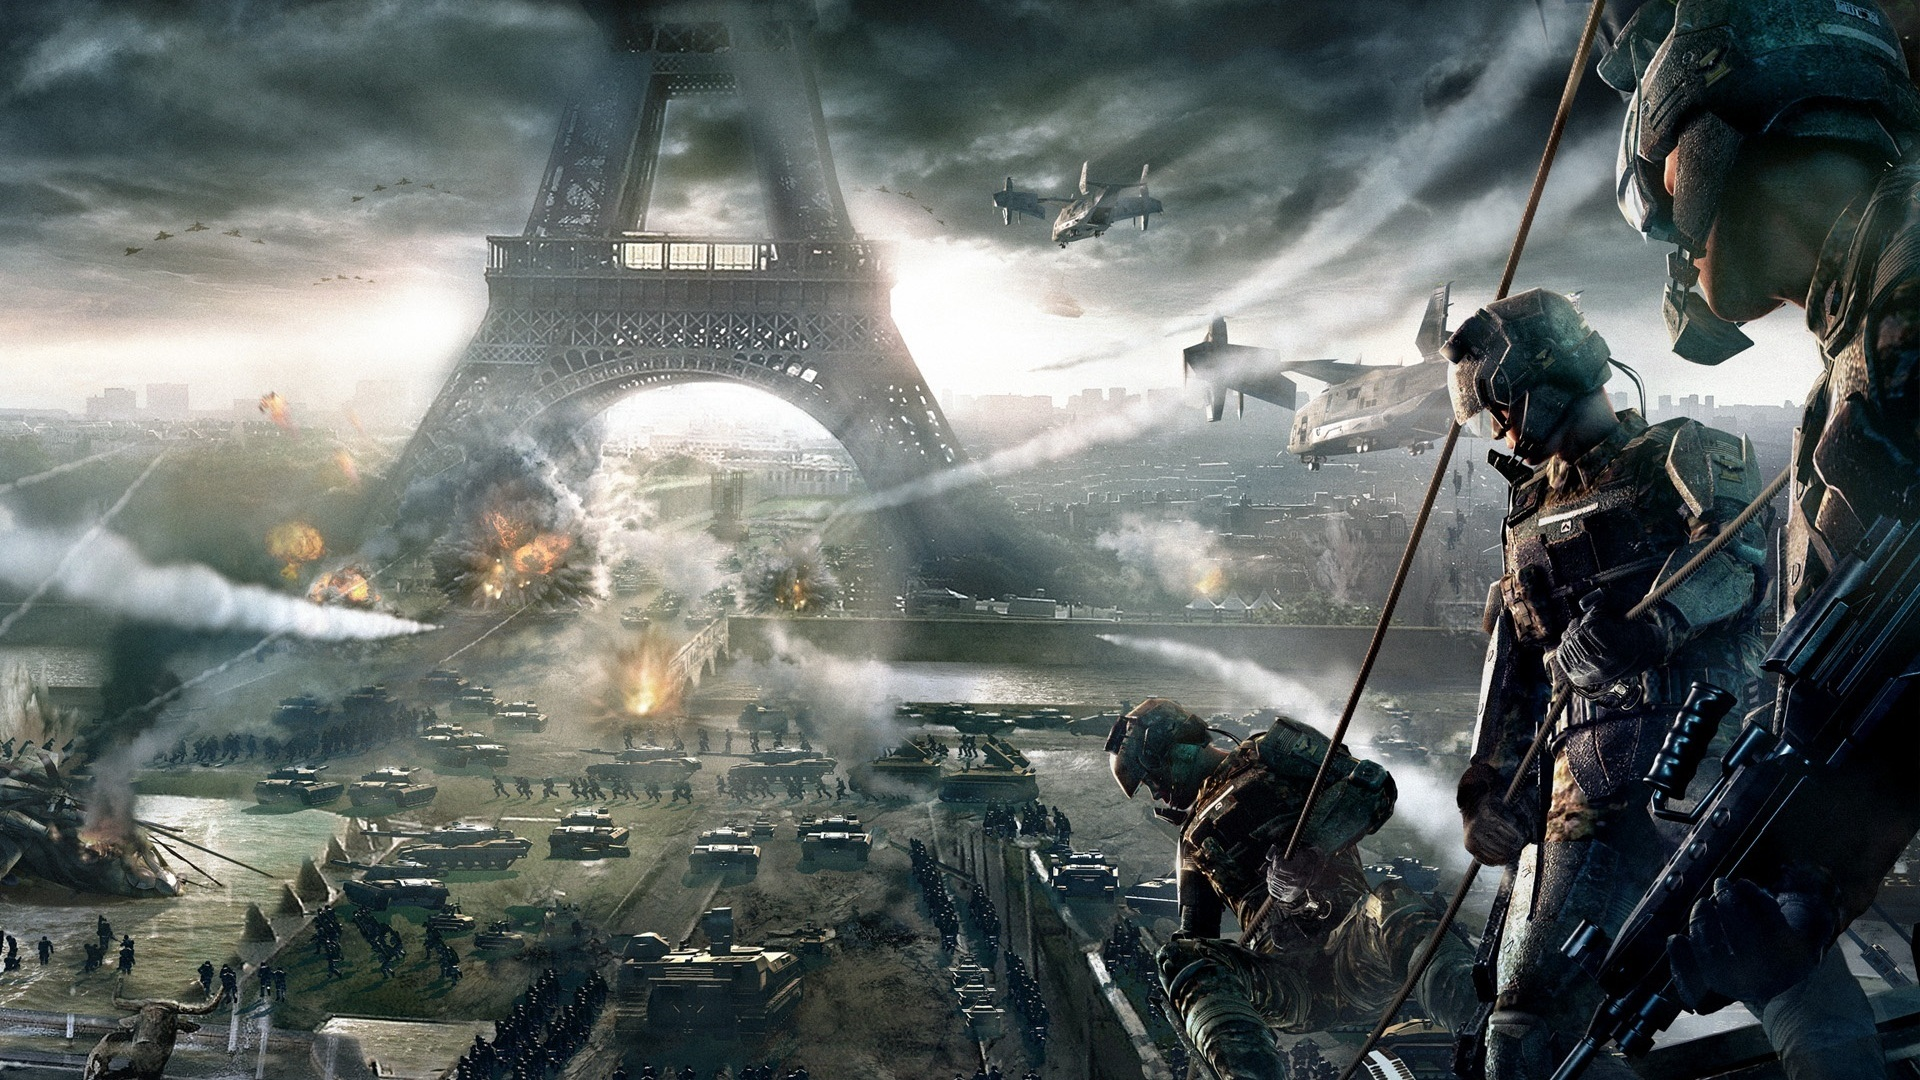 Wallpaper Tom Clancys Endwar at Paris 1920x1200 HD Picture Image 1920x1080